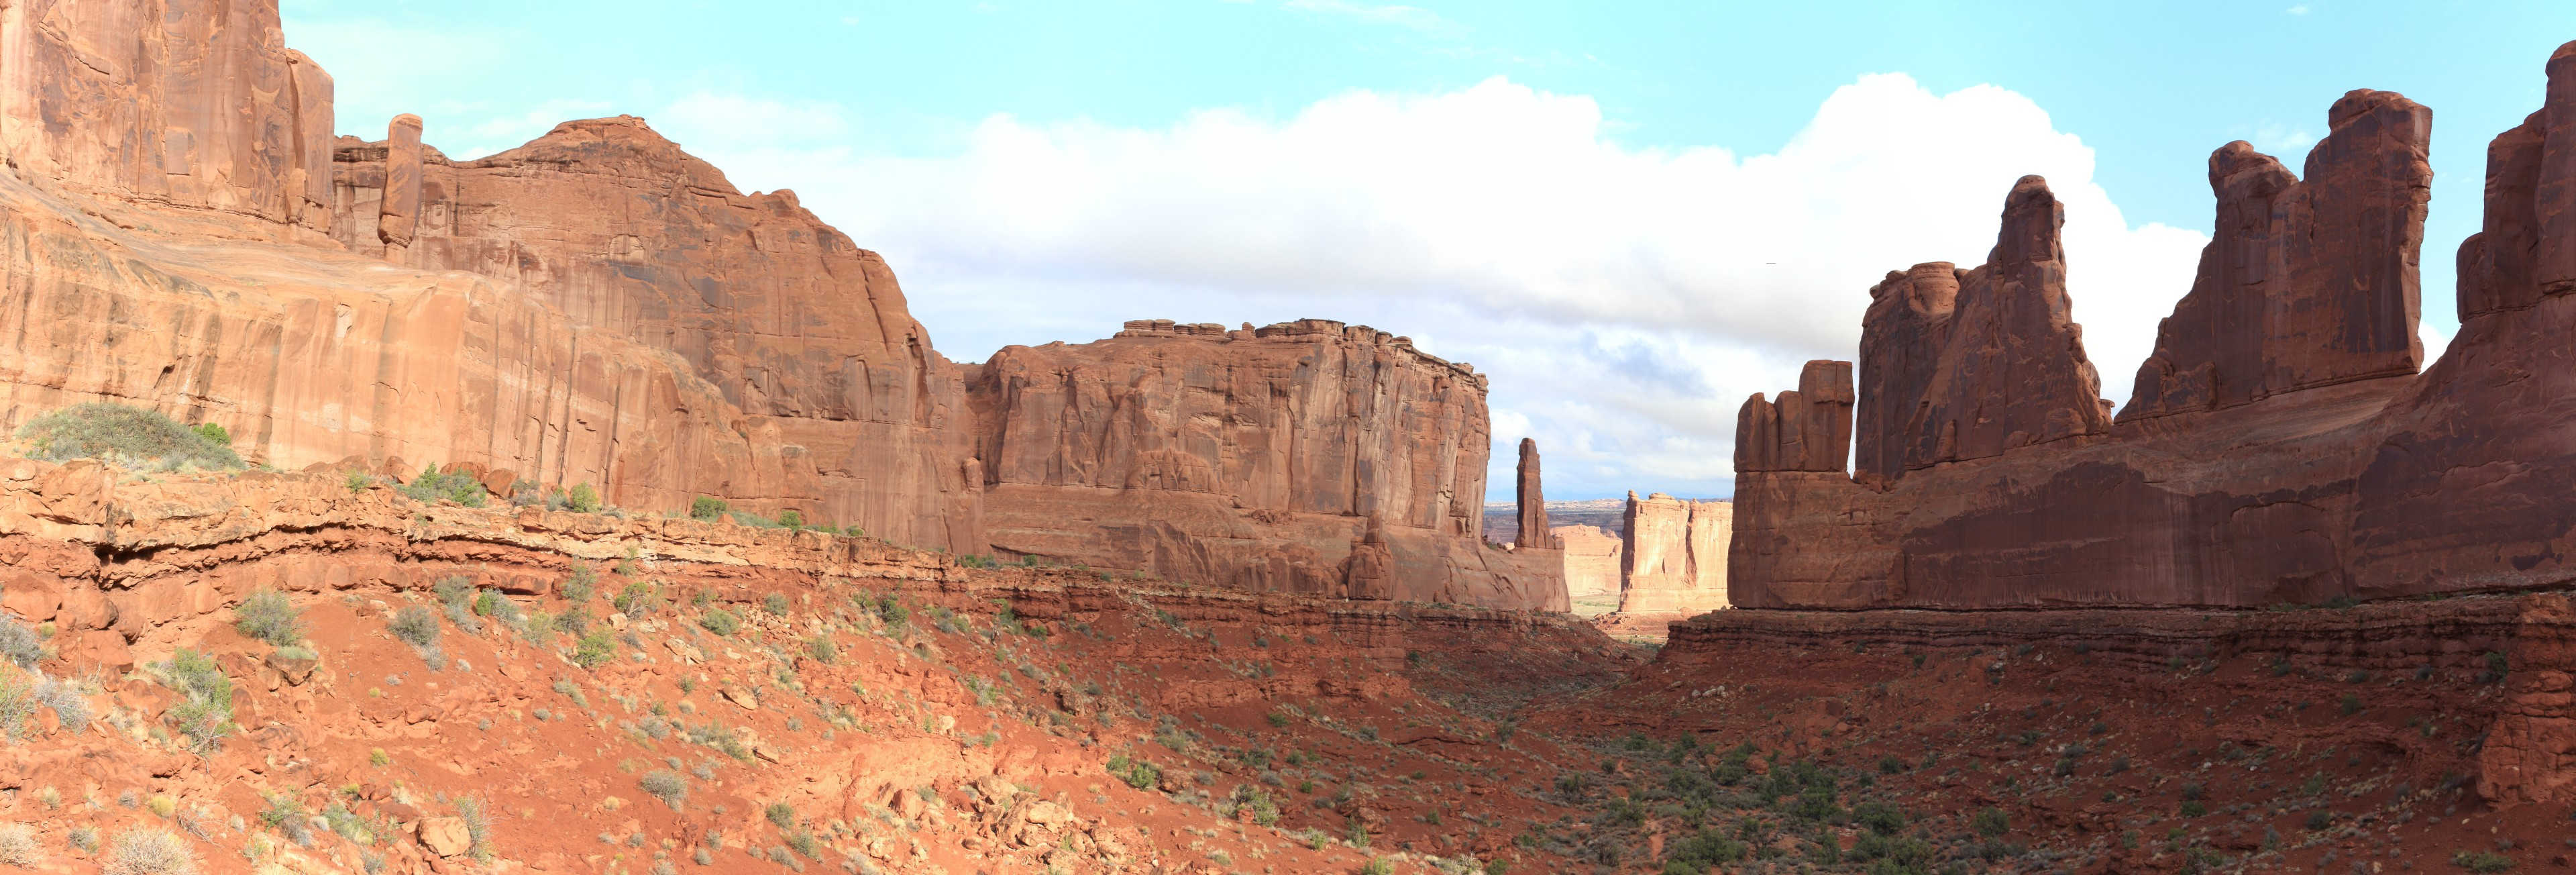 The Park Avenue formed by a rock wall on the left and the Organ Pipe fins on the right.